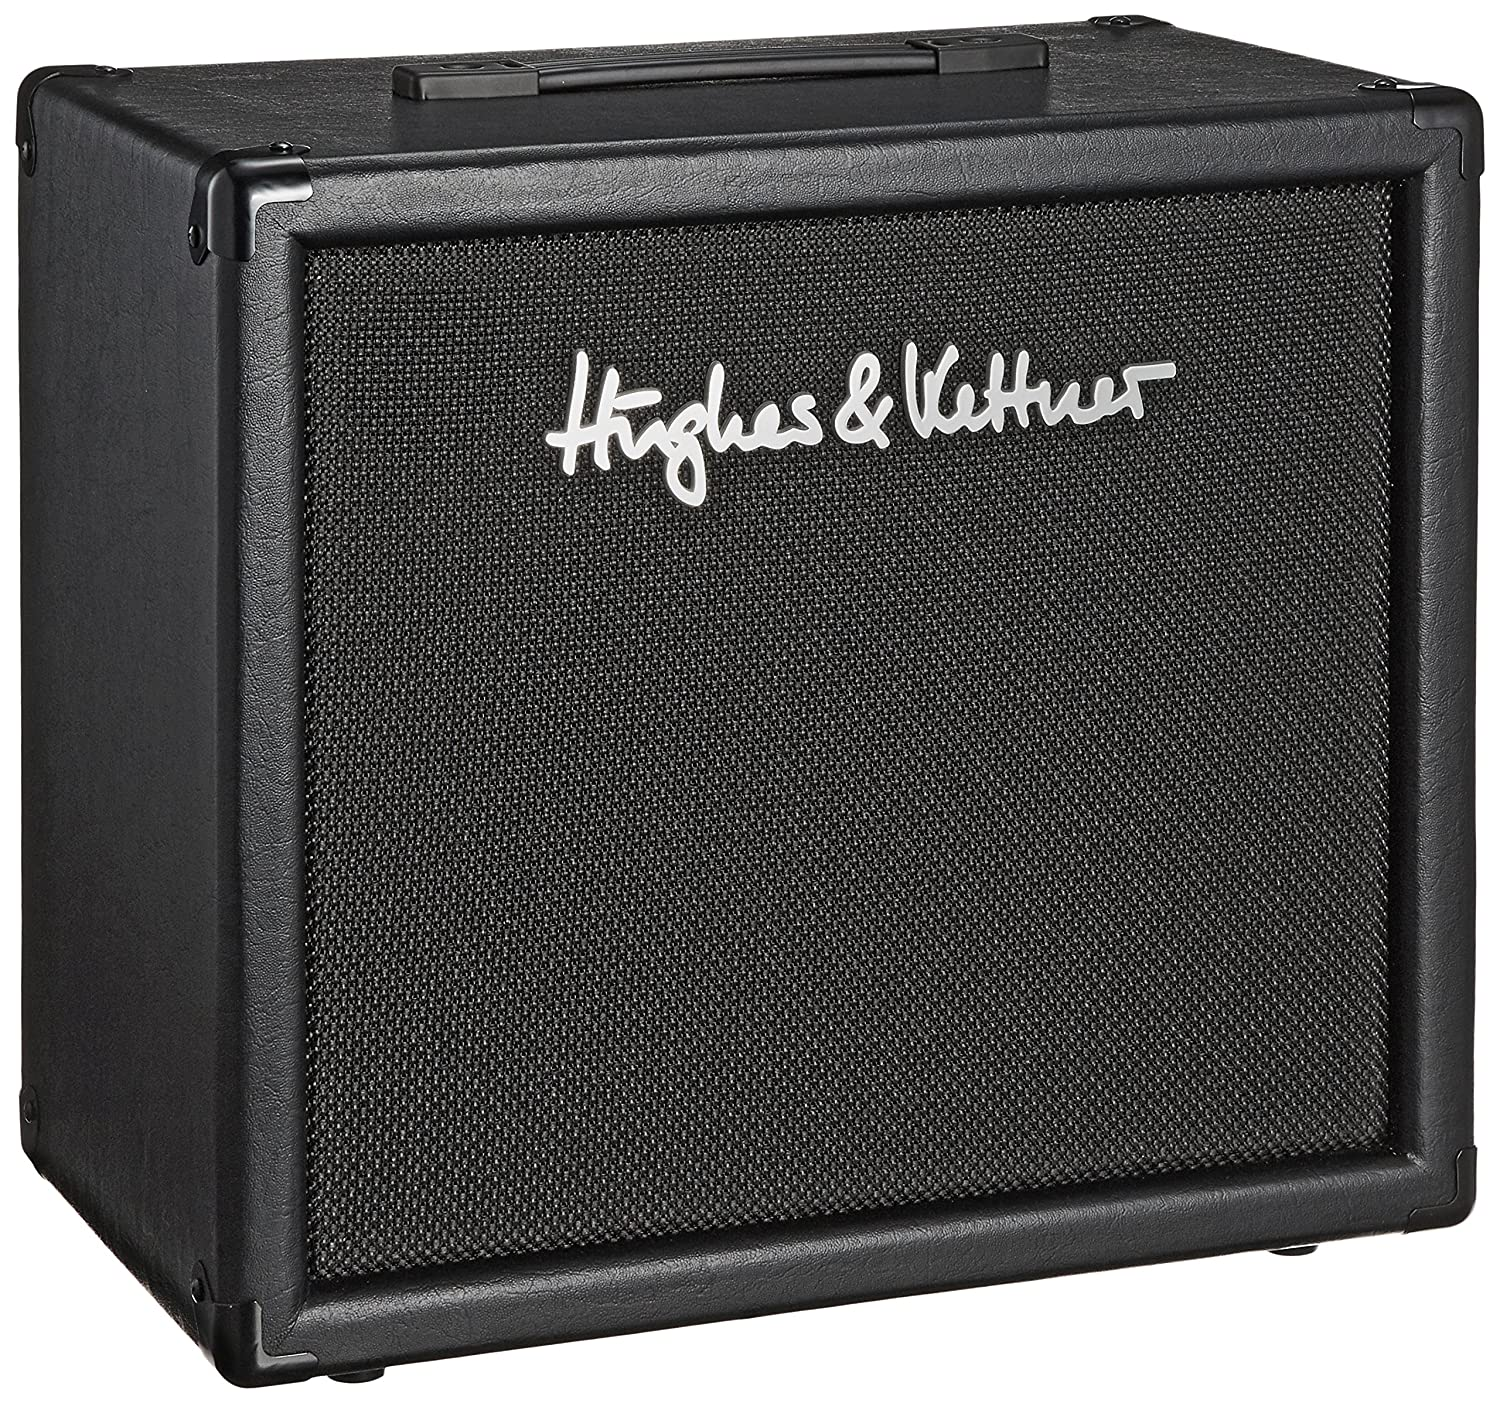 1x12 Guitar Cabinet Empty Amazoncom Cabinets Electric Guitar Amplifiers Musical Instruments